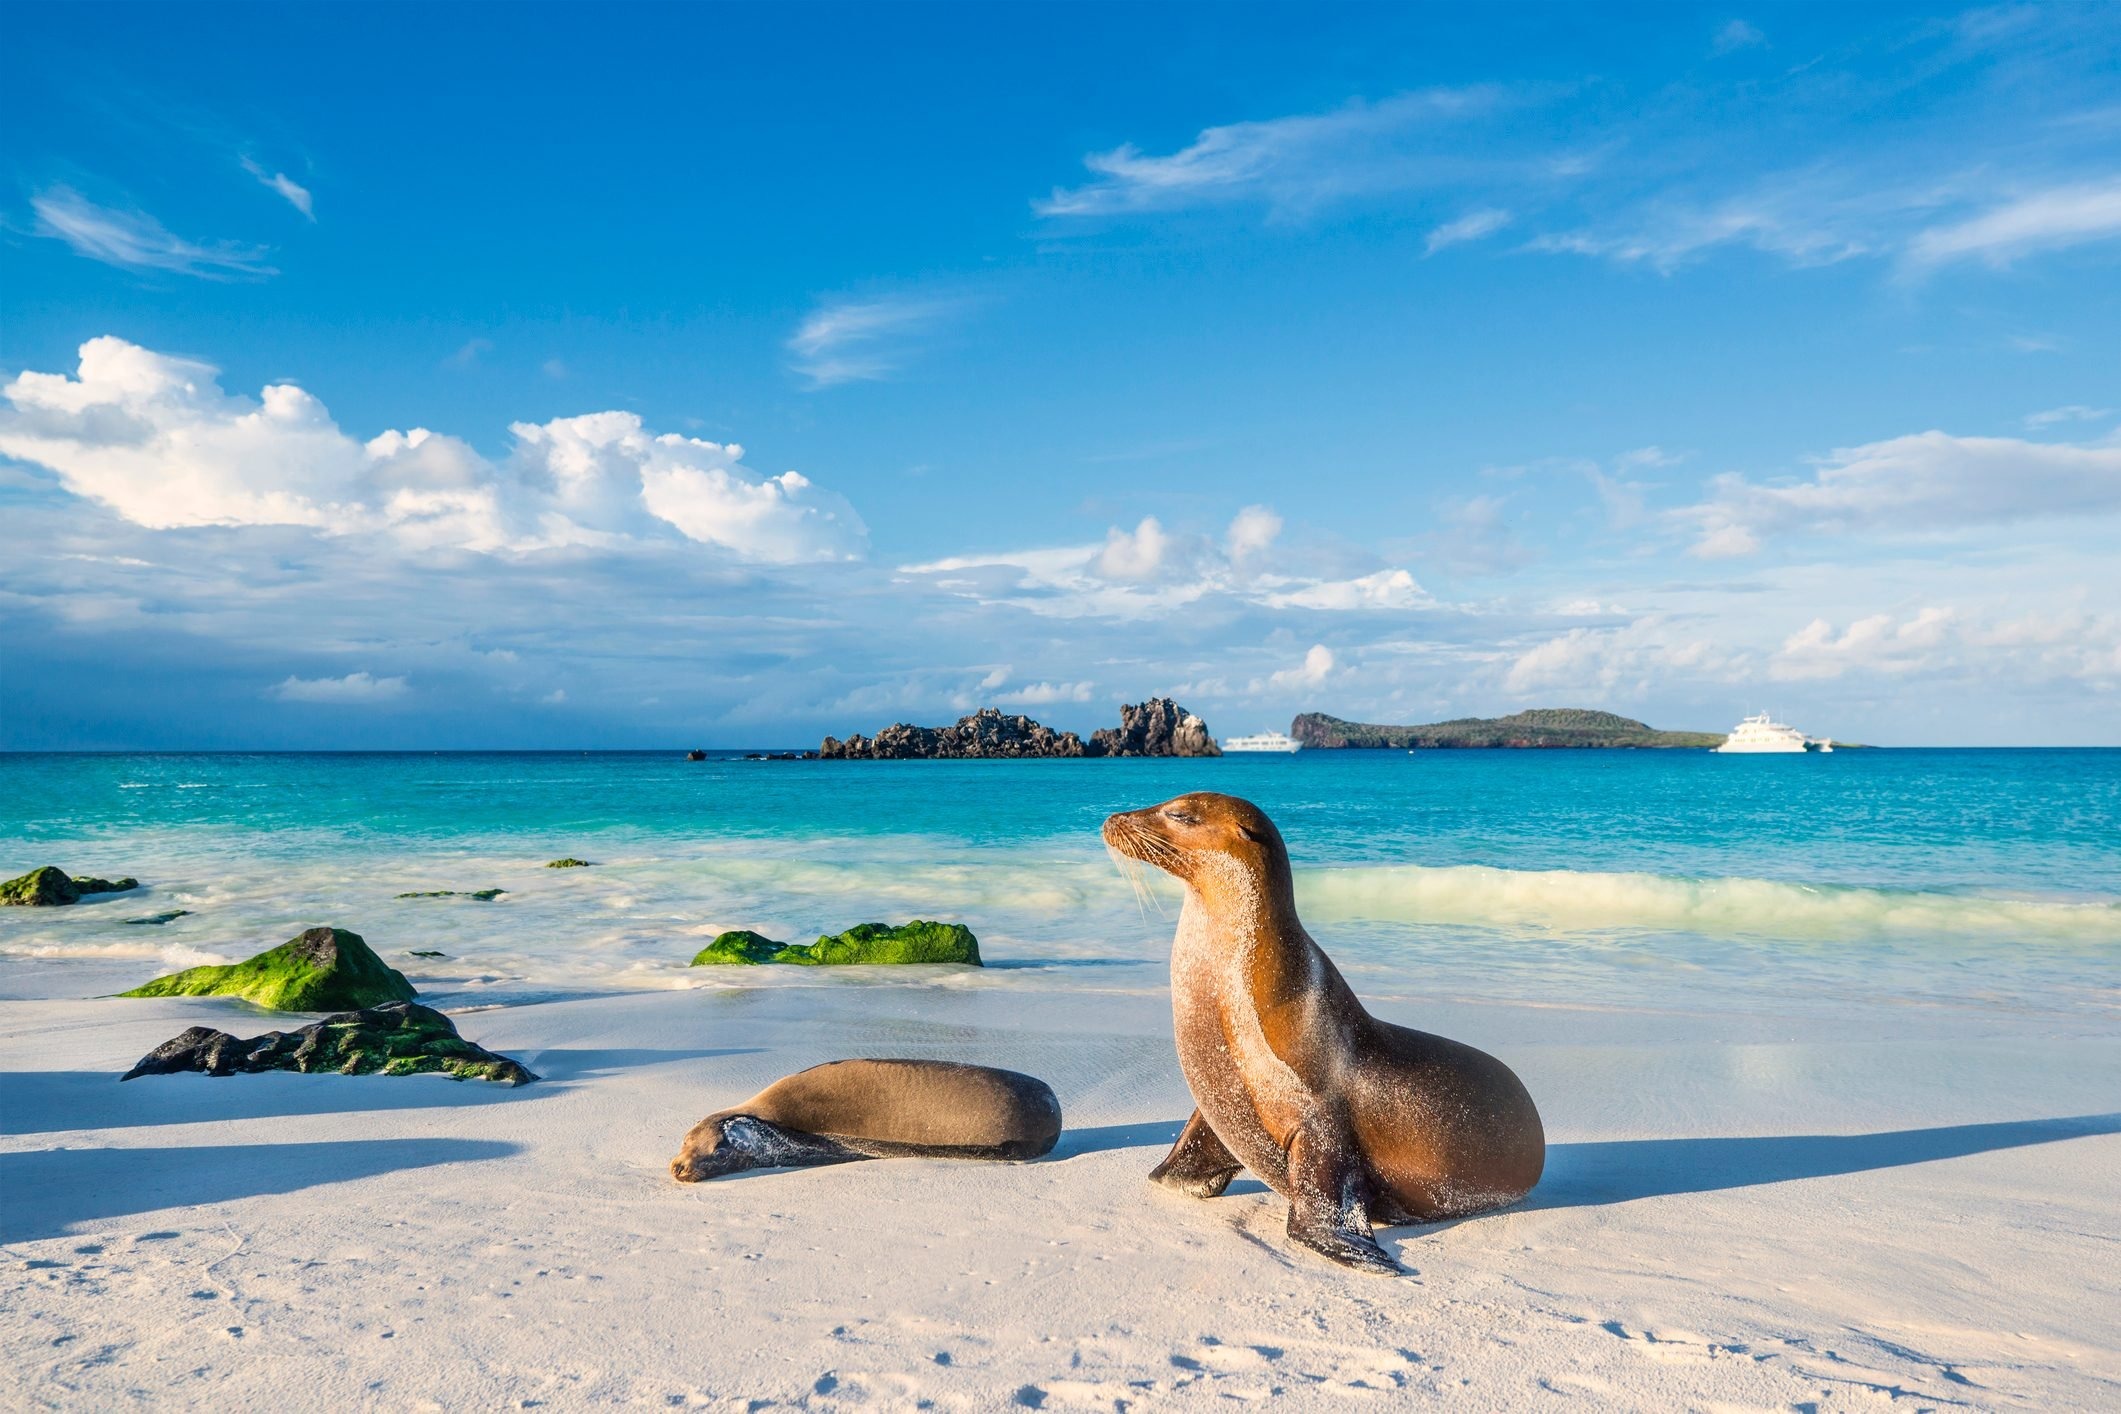 Galapagos sea lion (Zalophus wollebaeki) at the beach of Espanola island